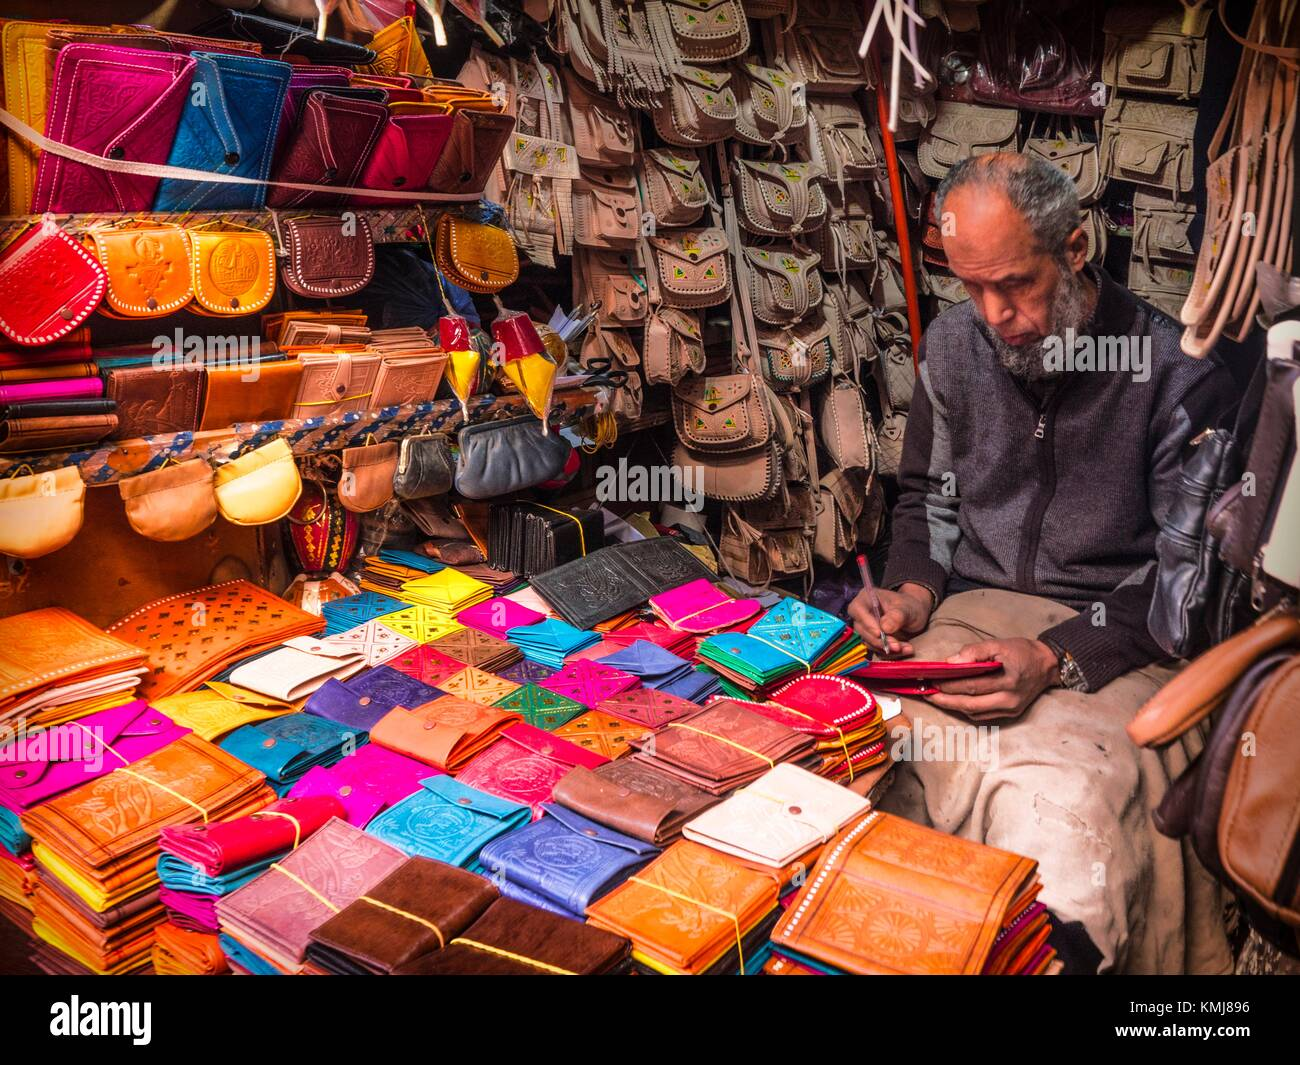 Morocco, Fes, handicraft- in a leather workshop in the 'Medina' (old part) of Fes. - Stock Image